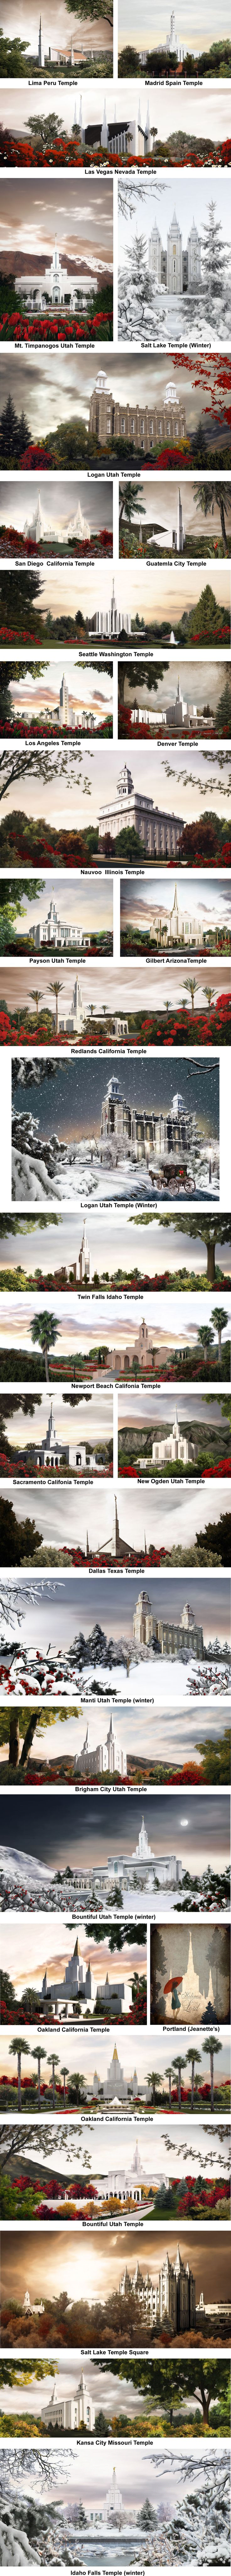 Temple pics by Brent Borrup. I actually have the Draper Temple one in my room! It's so pretty :)